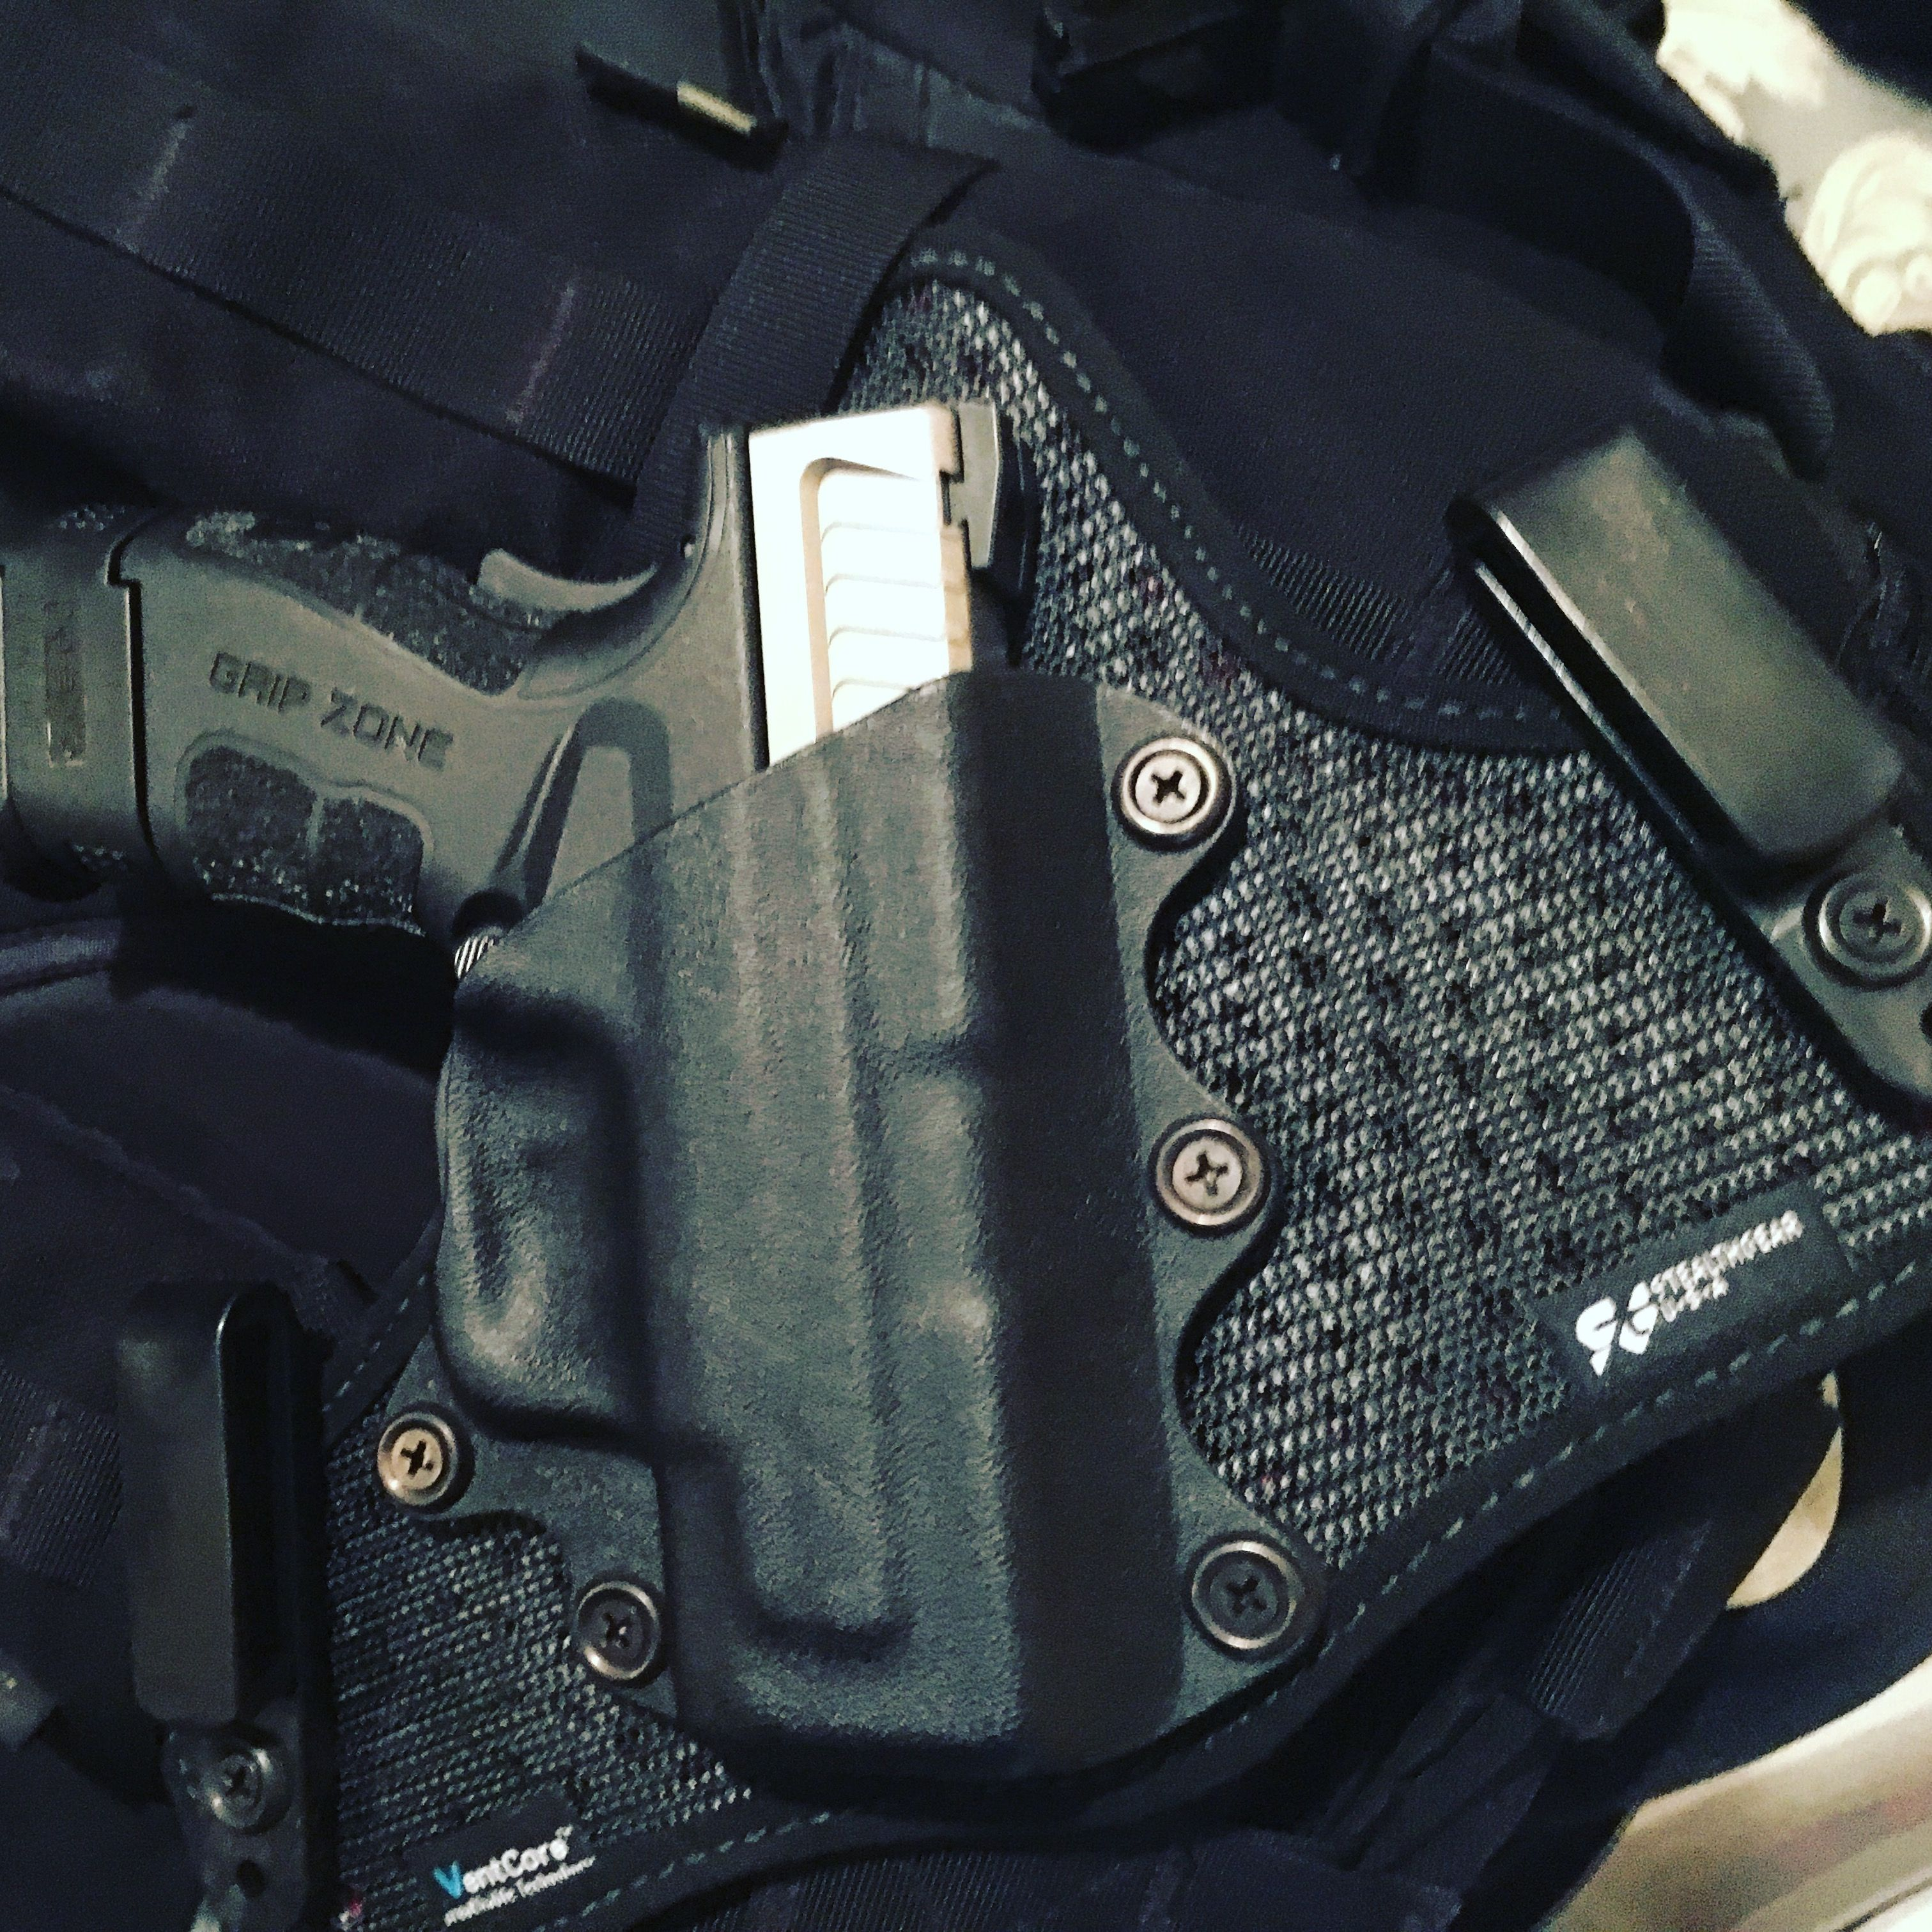 Stealthgear IWB covert duty holster  Sporting a Springfield